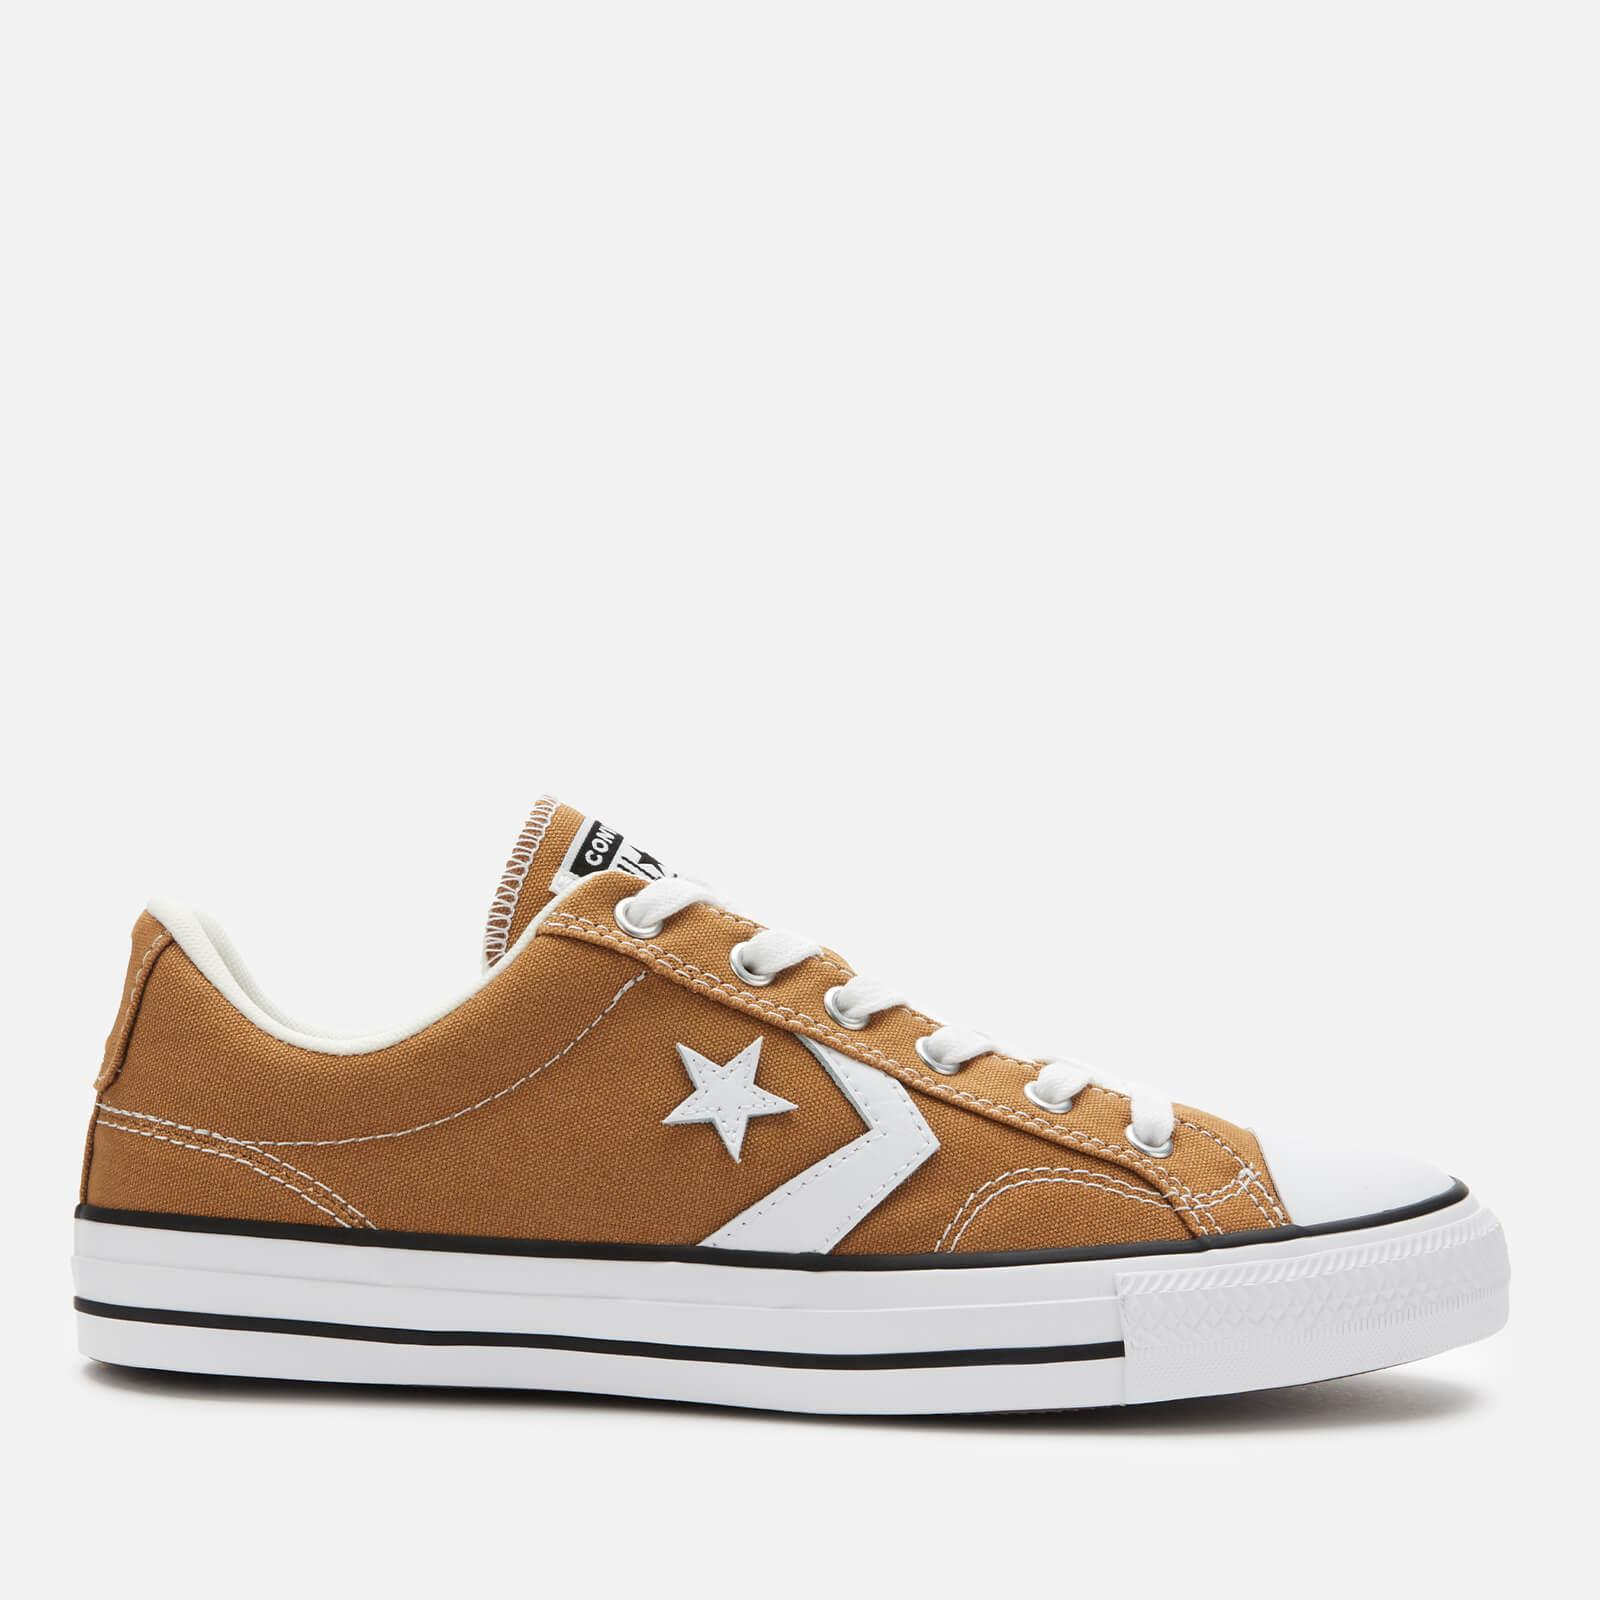 Converse Star Player Ox Trainers in Brown for Men - Lyst